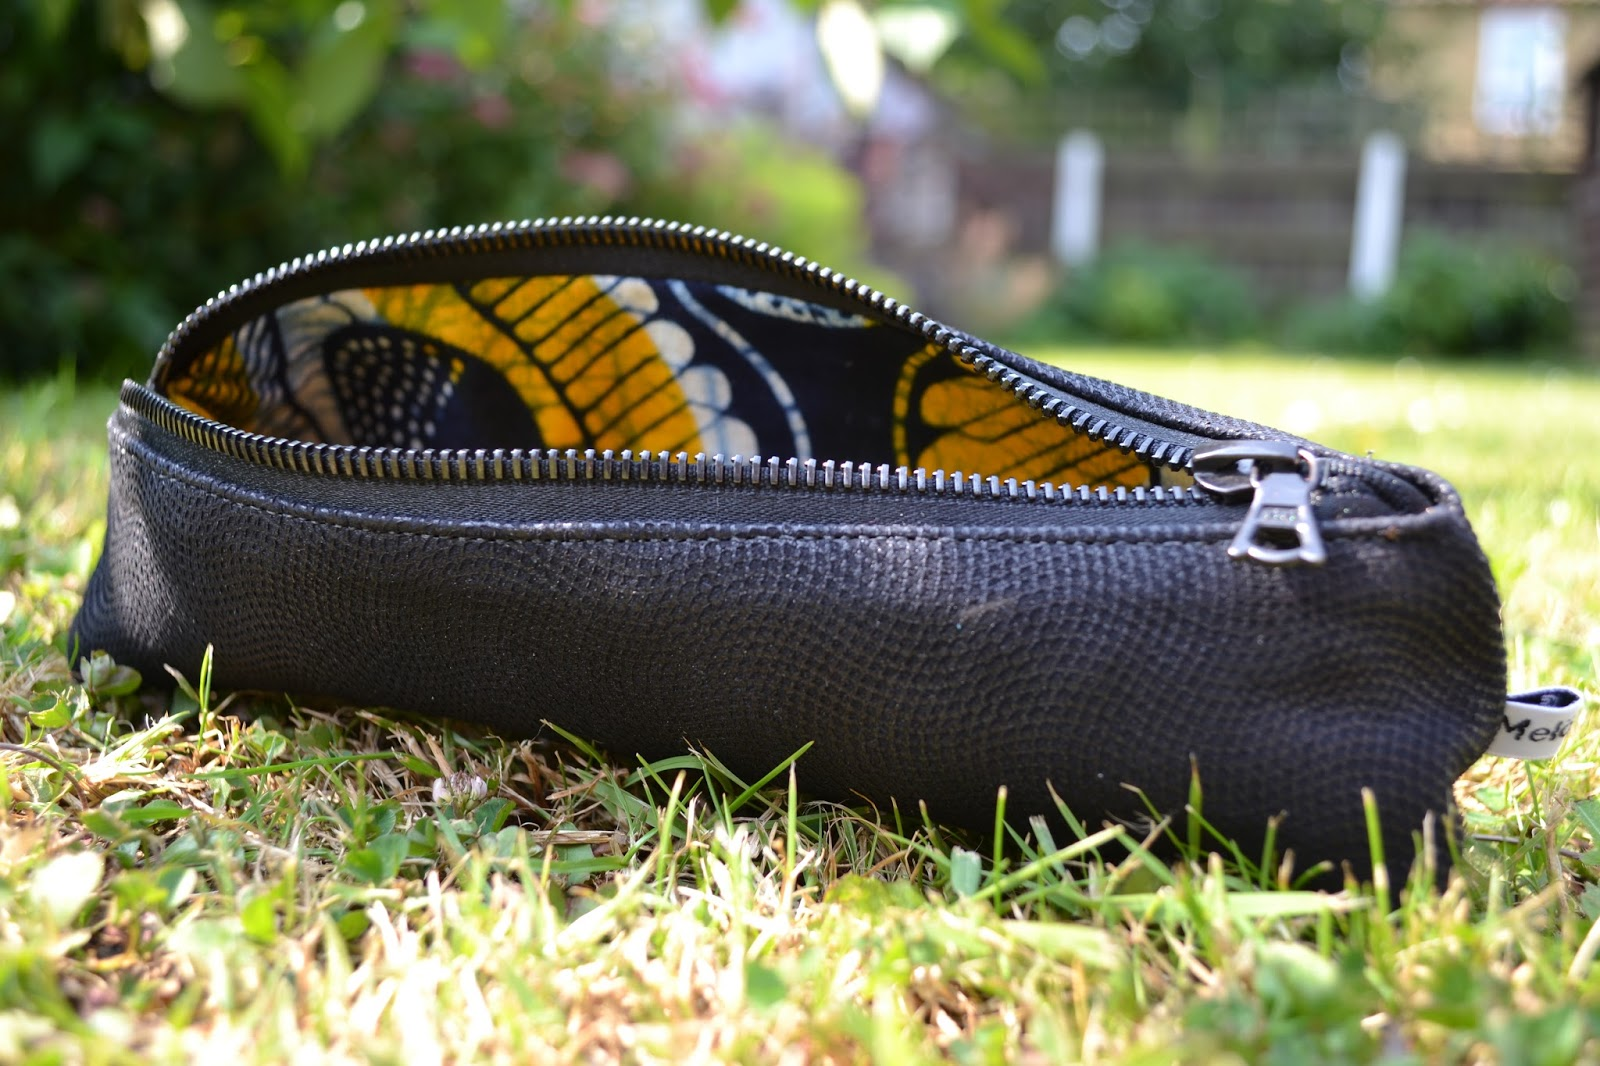 Meloleather African fabric lined leather purse made by Melo 2012